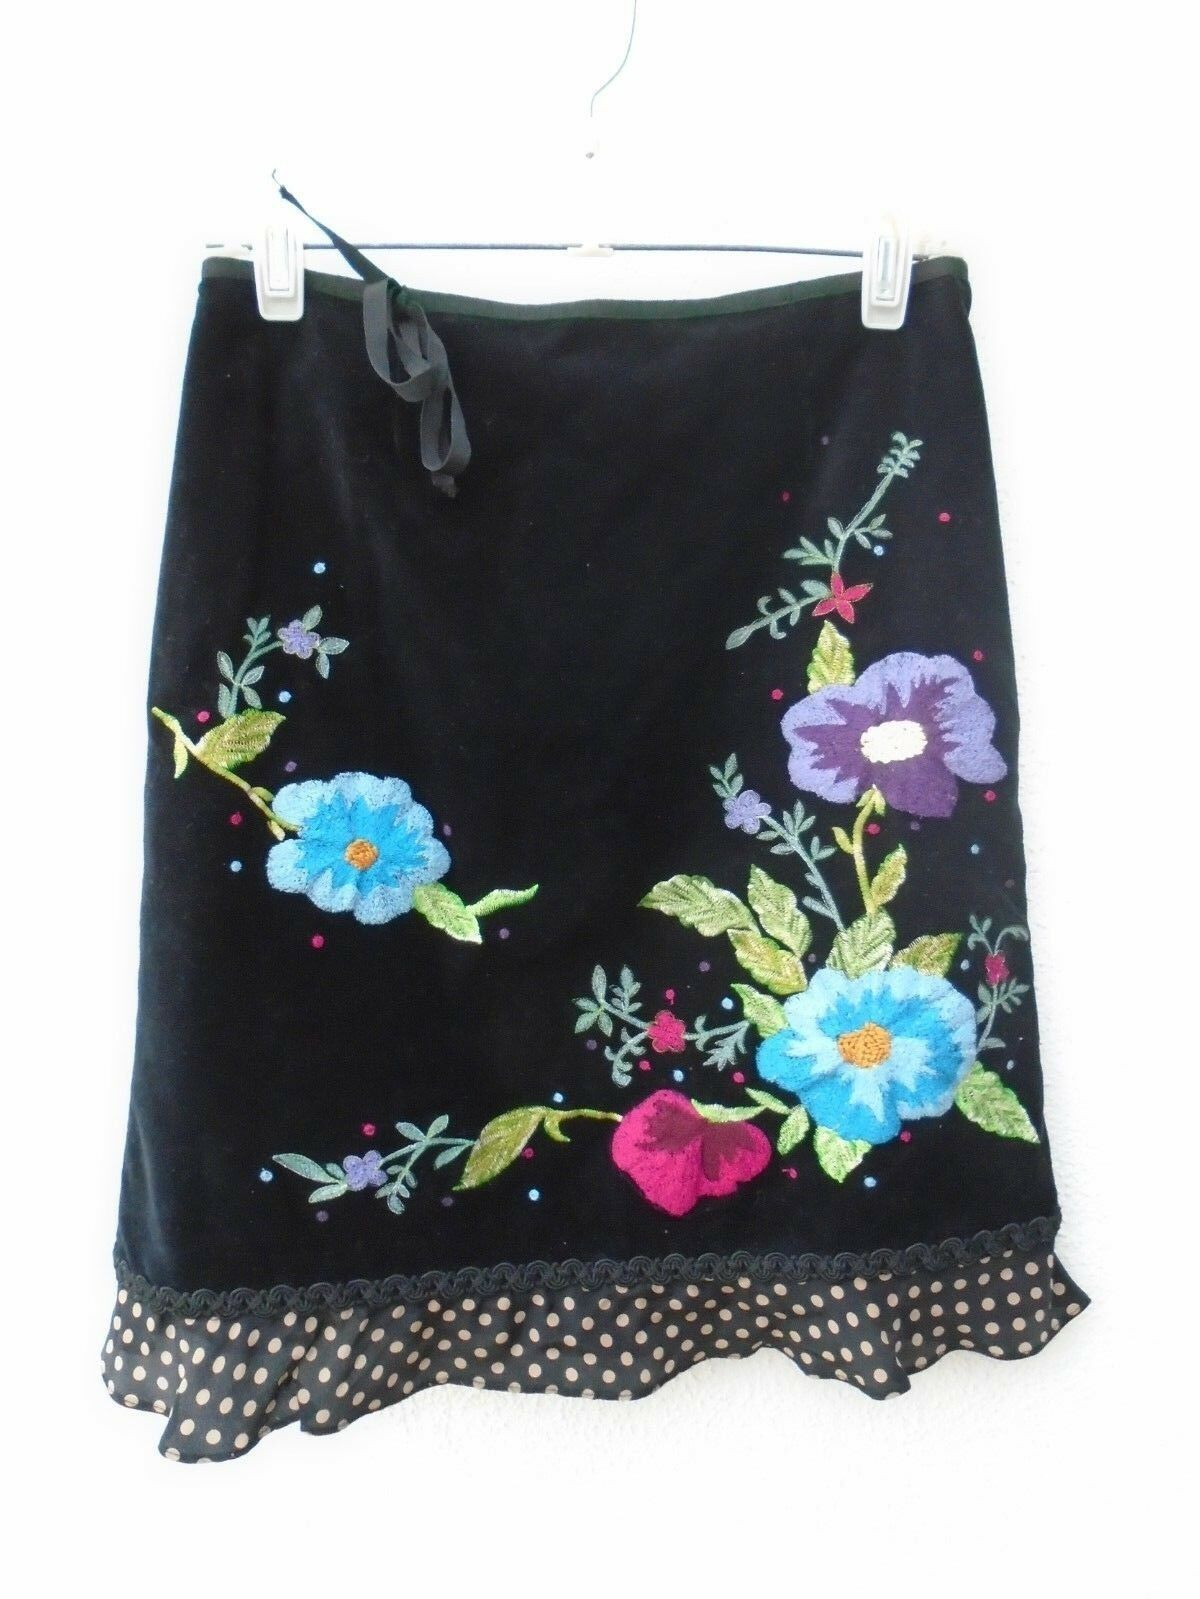 NANETTE LEPORE Beautiful Floral Embroidered Flirty Fun Skirt Size 4